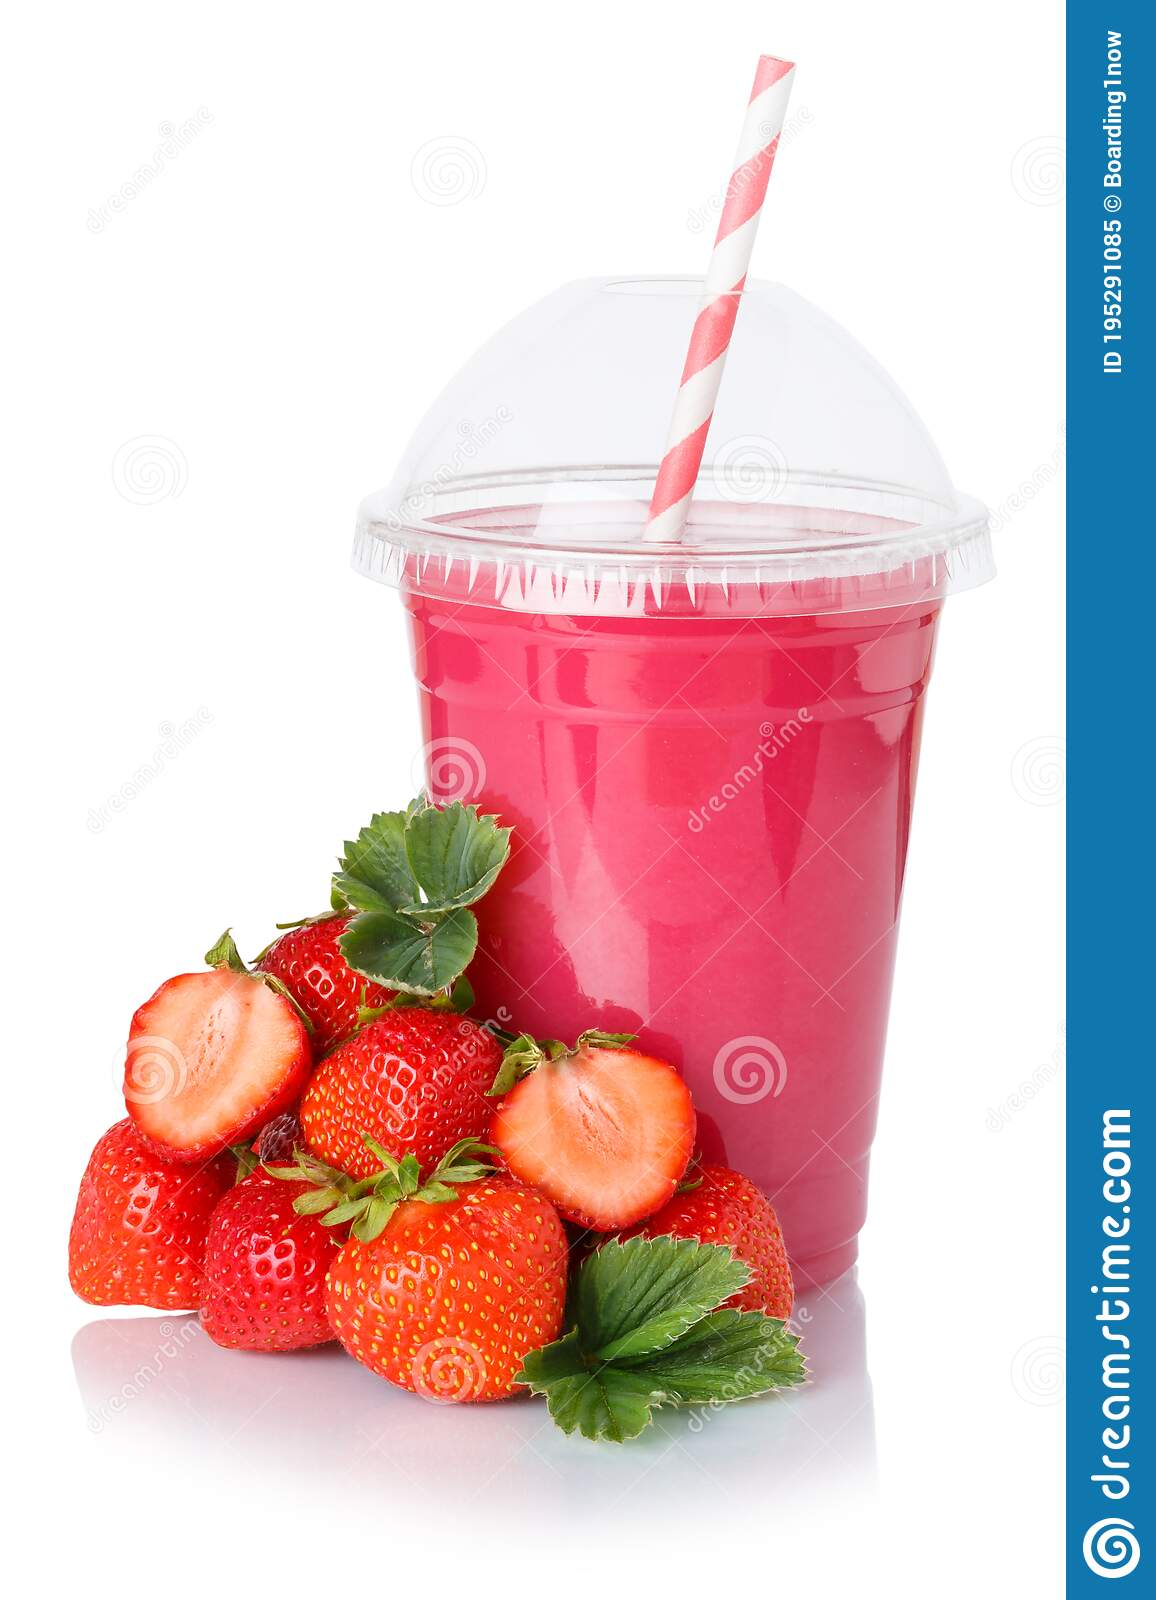 Gambar Jus Strawberry : gambar, strawberry, 9,592, Juice, Strawberry, Photos, Royalty-Free, Stock, Dreamstime